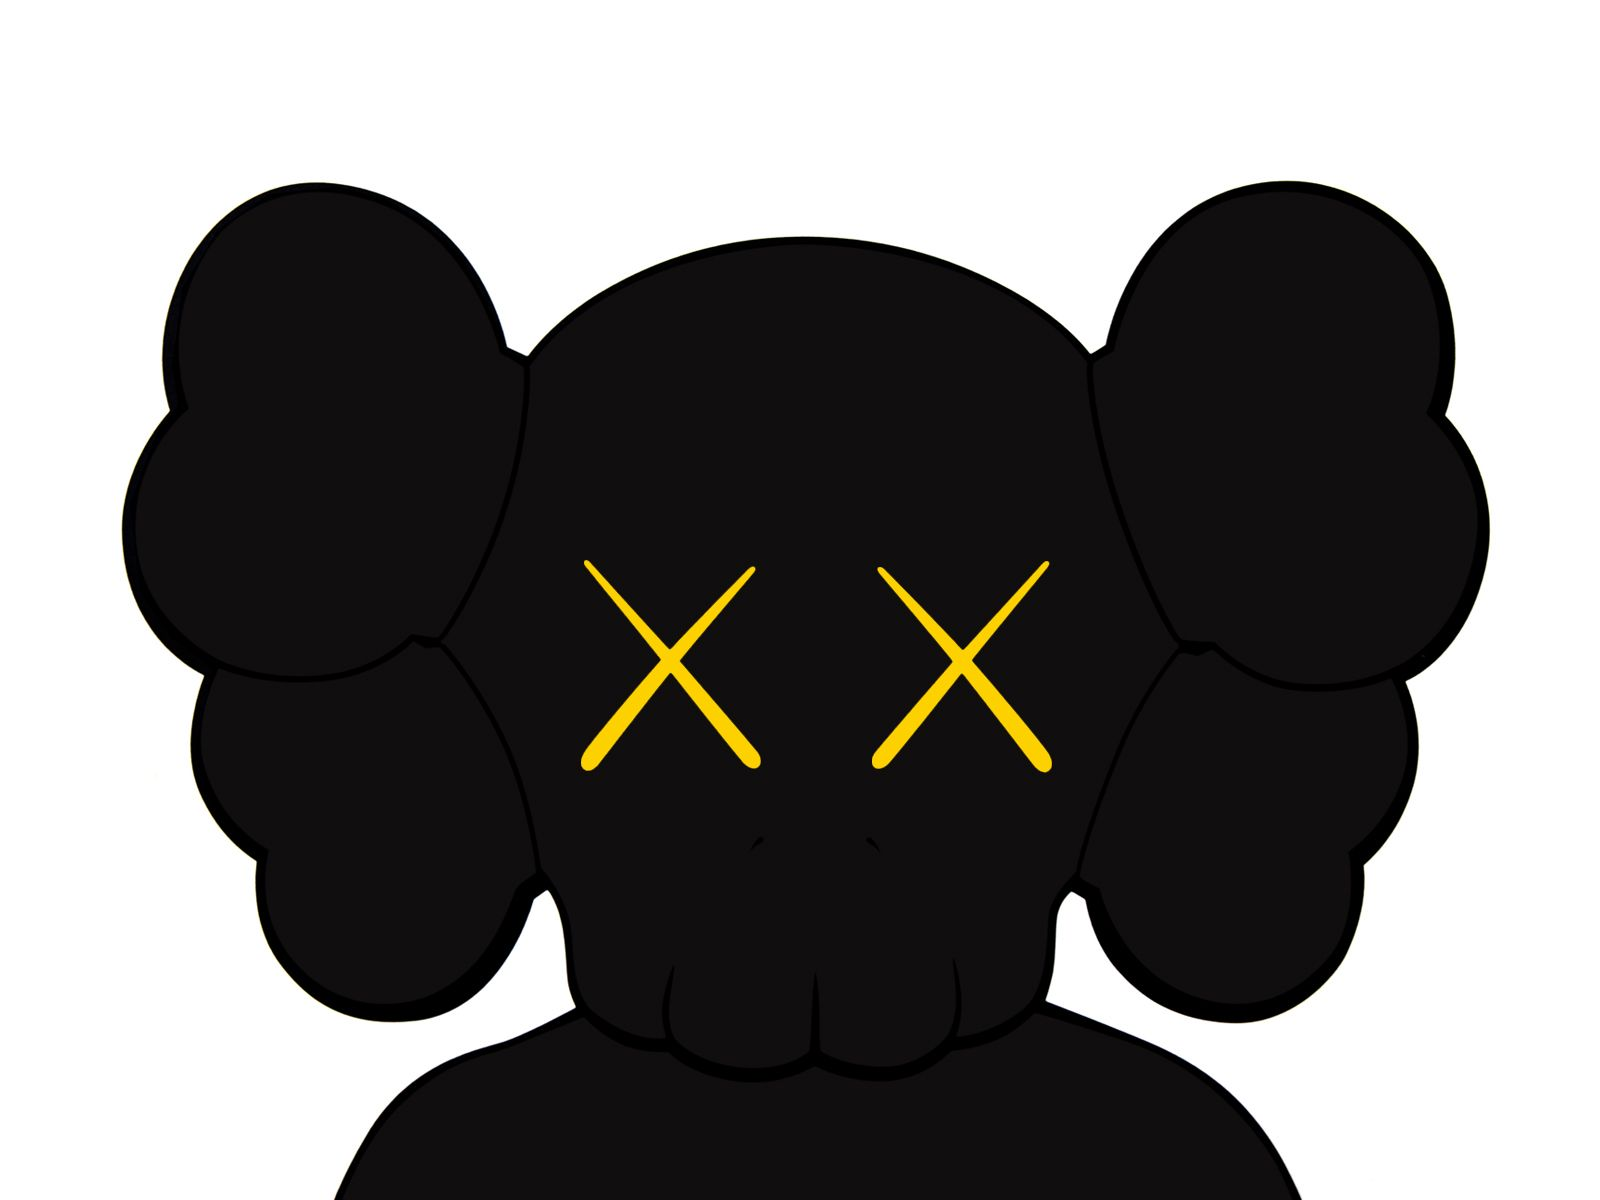 Kaws Hd Wallpaper Kaws Wallpaper Wall Art Wallpaper Kaws